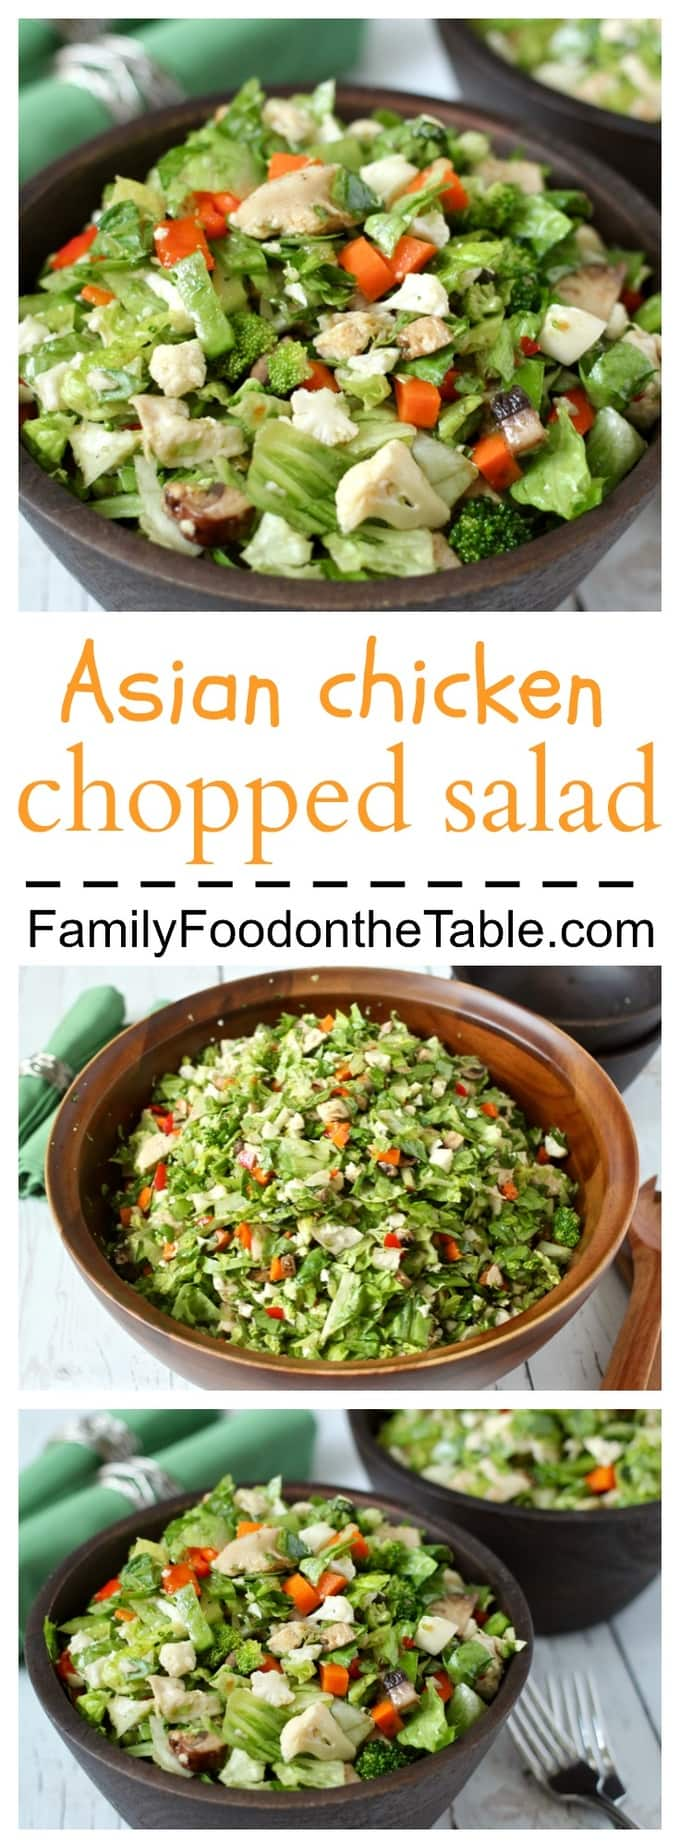 A fresh Asian-style chopped salad with an easy, homemade soy ginger dressing - a healthy lunch or dinner!